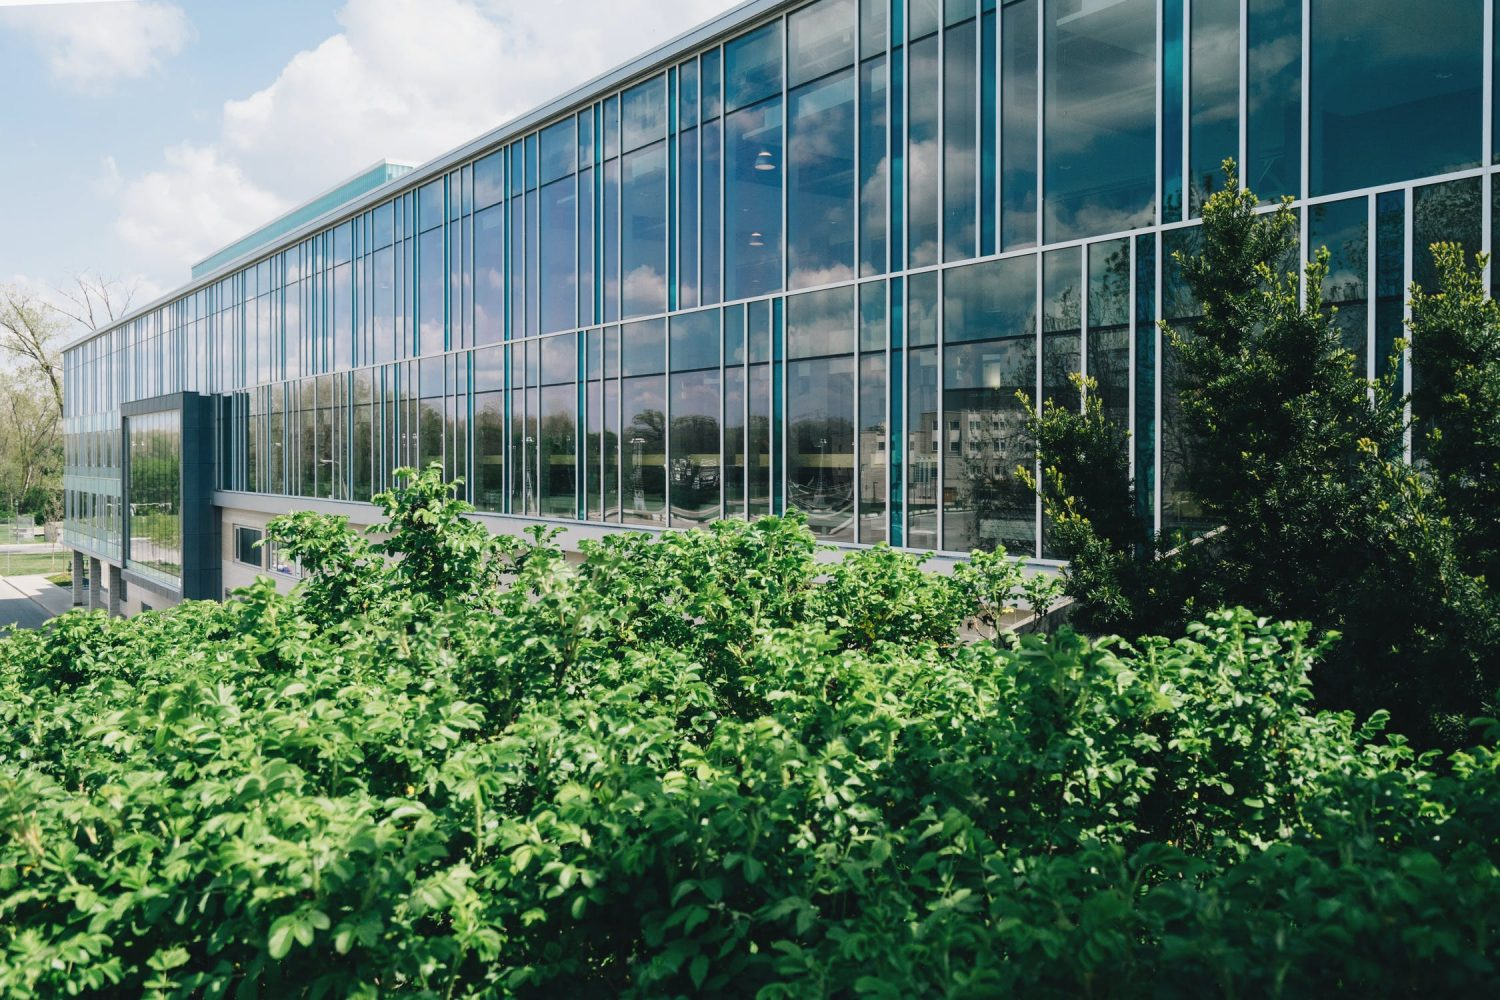 2021 Construction Trends Facilitated By Commercial Window Films - Commercial Window Film in Indianapolis, Indiana